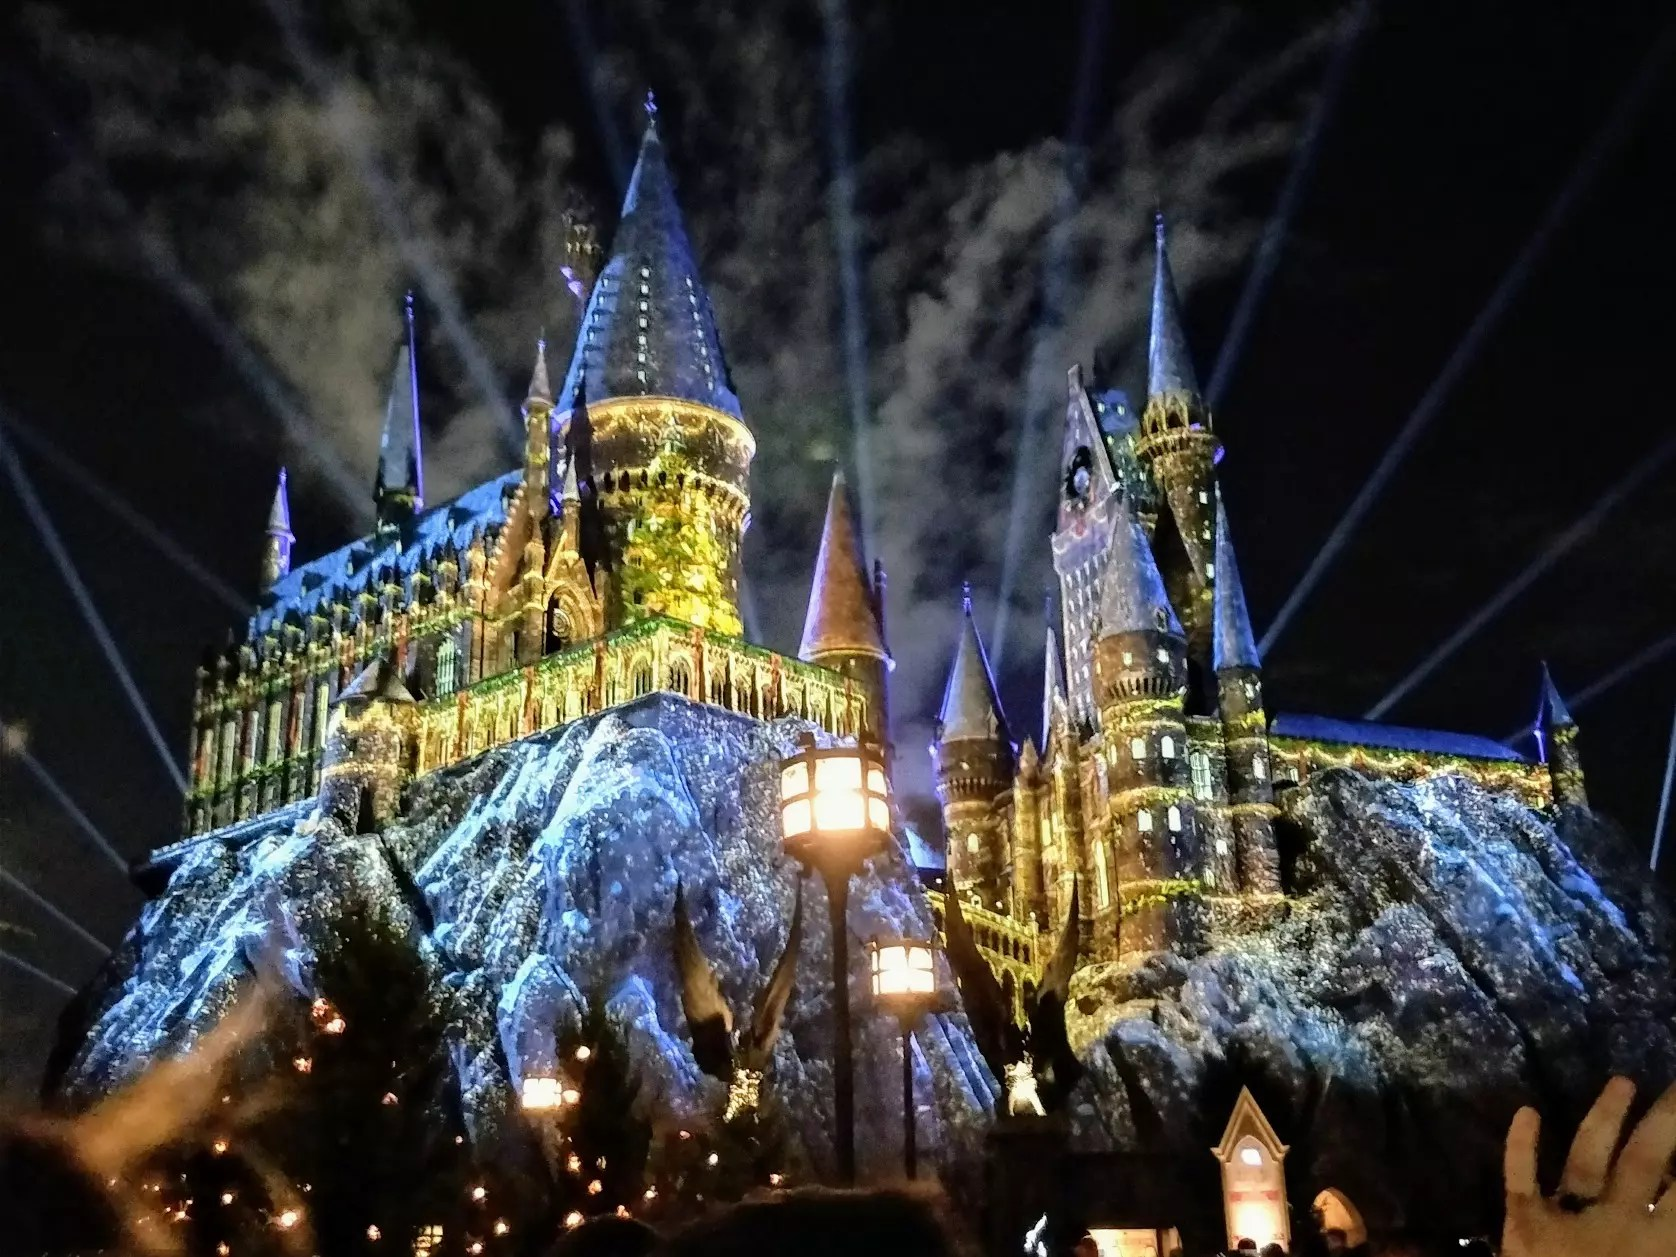 Celebrating The Holidays With A Universal Orlando